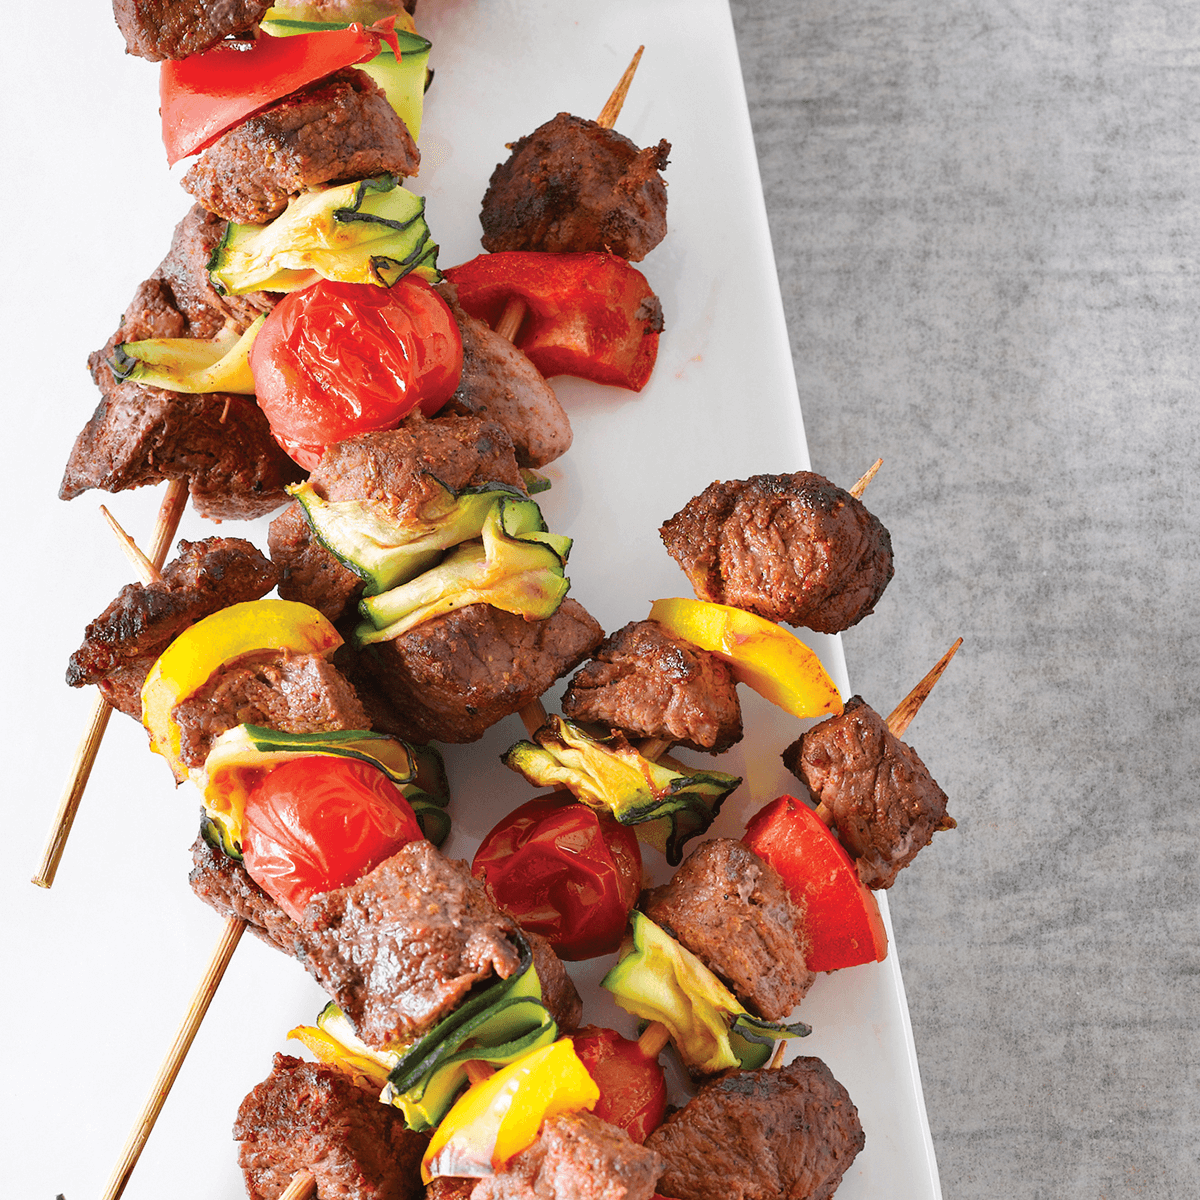 BEEF KEBABS WITH SOUTHERN SPICE RUB - The bold spice mix in this dish is what makes it so special. Being such a simple recipe, these Kebabs are perfect as a snack or starter and can easily be paired with sides of your choice to make them a more filling meal.